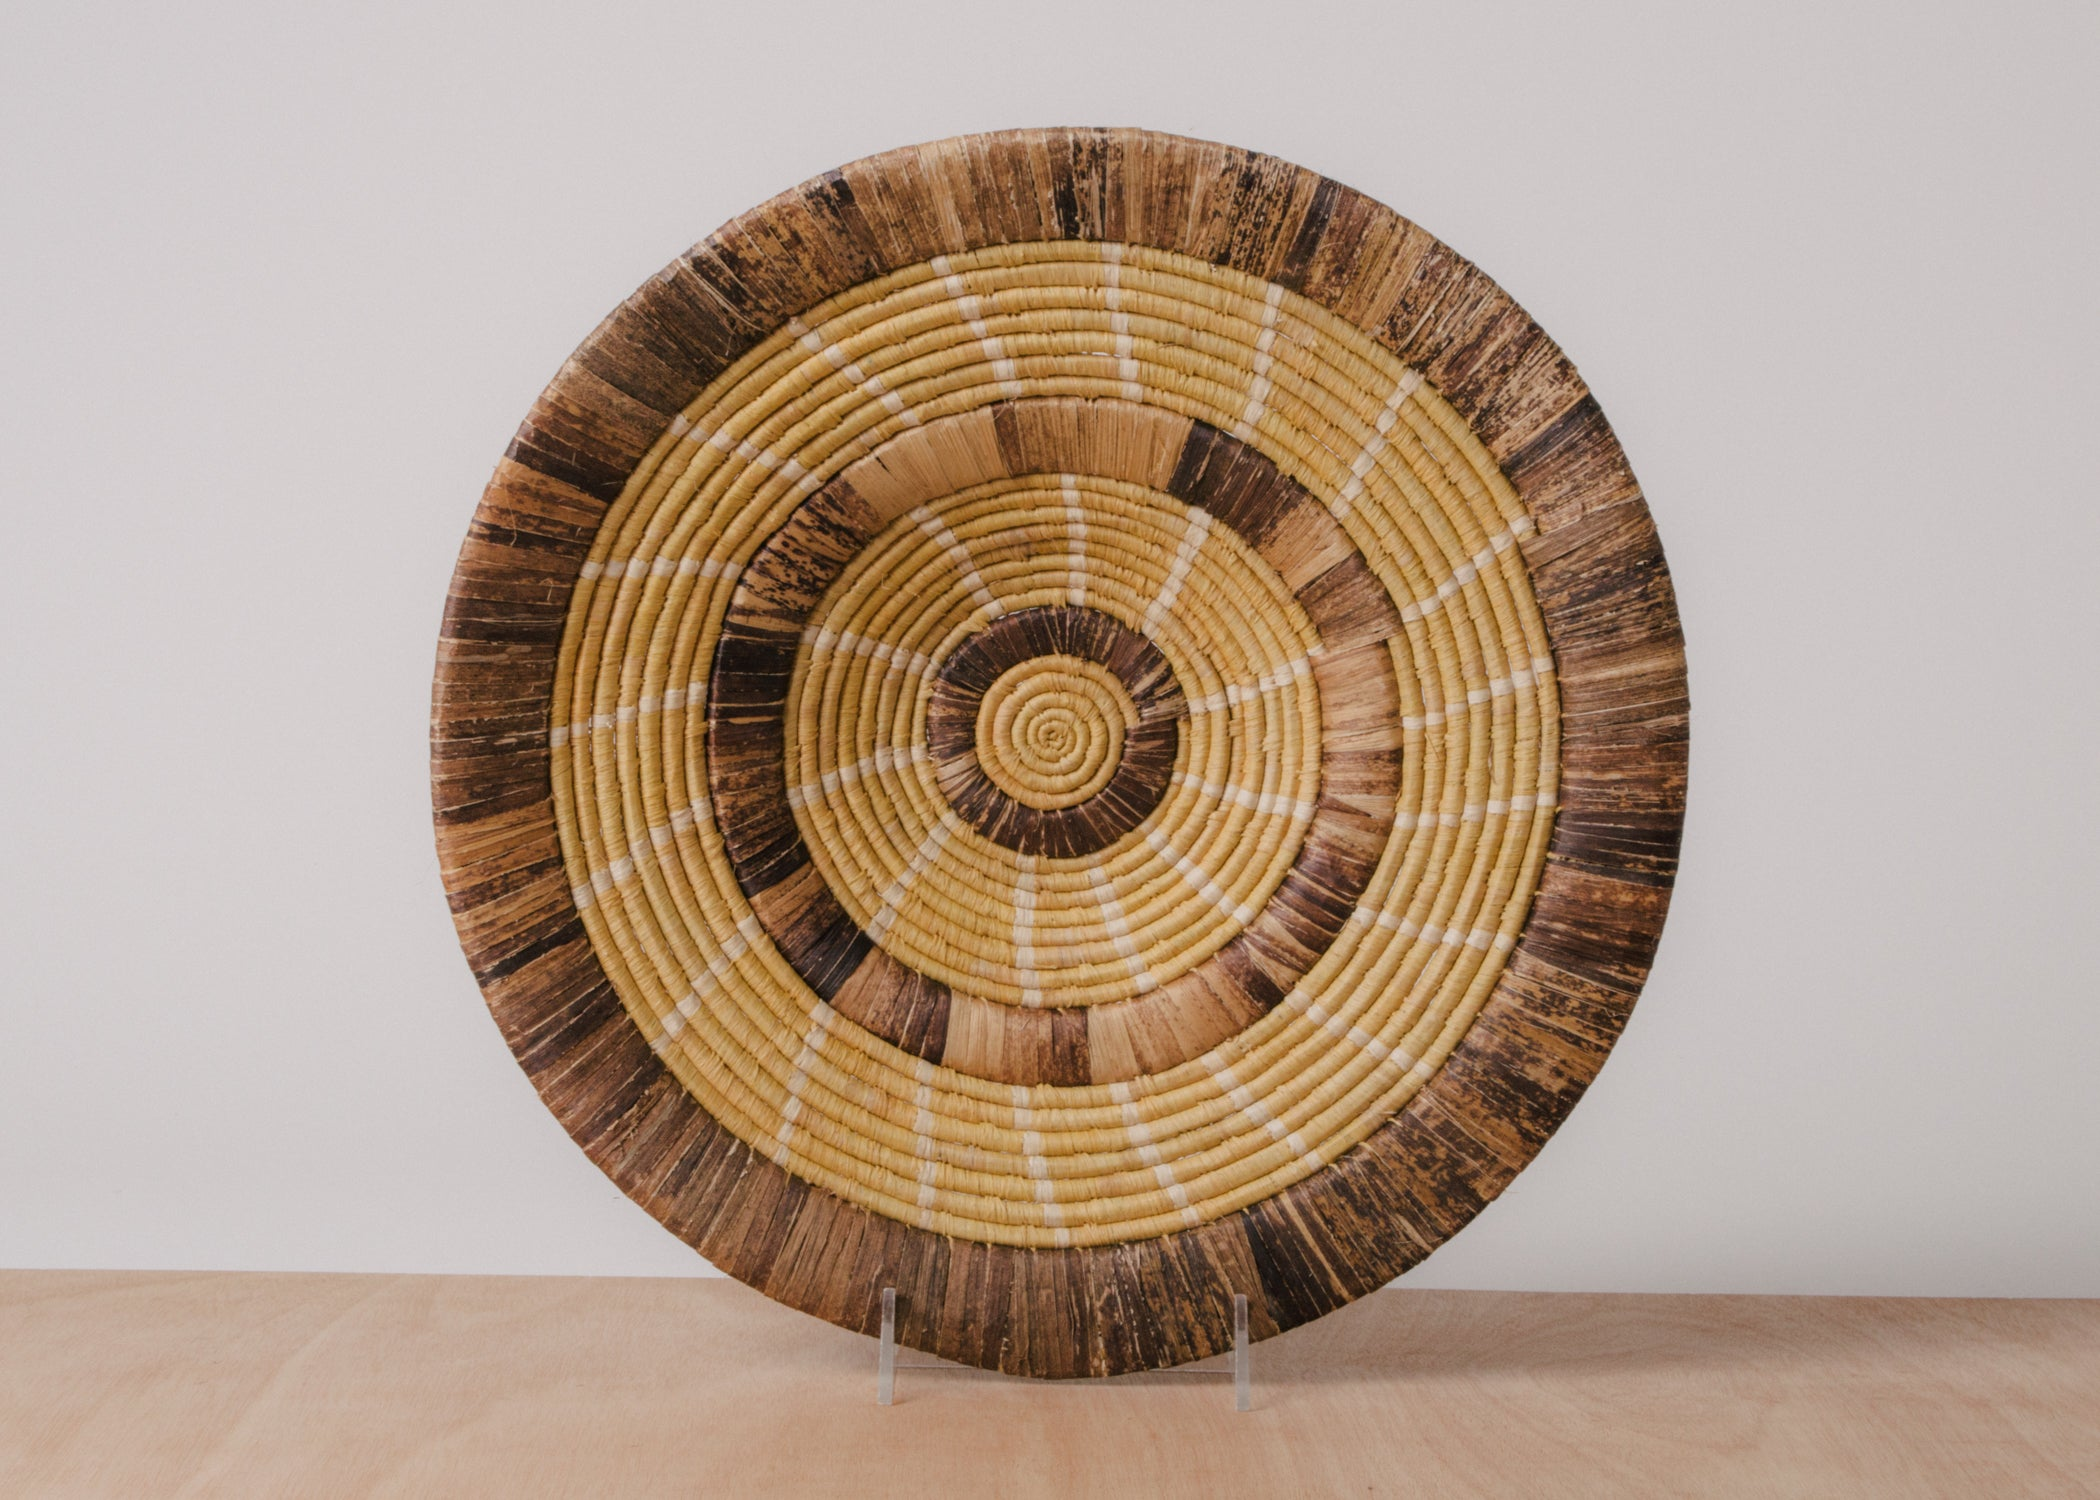 Ugandan Raffia Plate V - KAZI - Artisan made high quality home decor and wall art